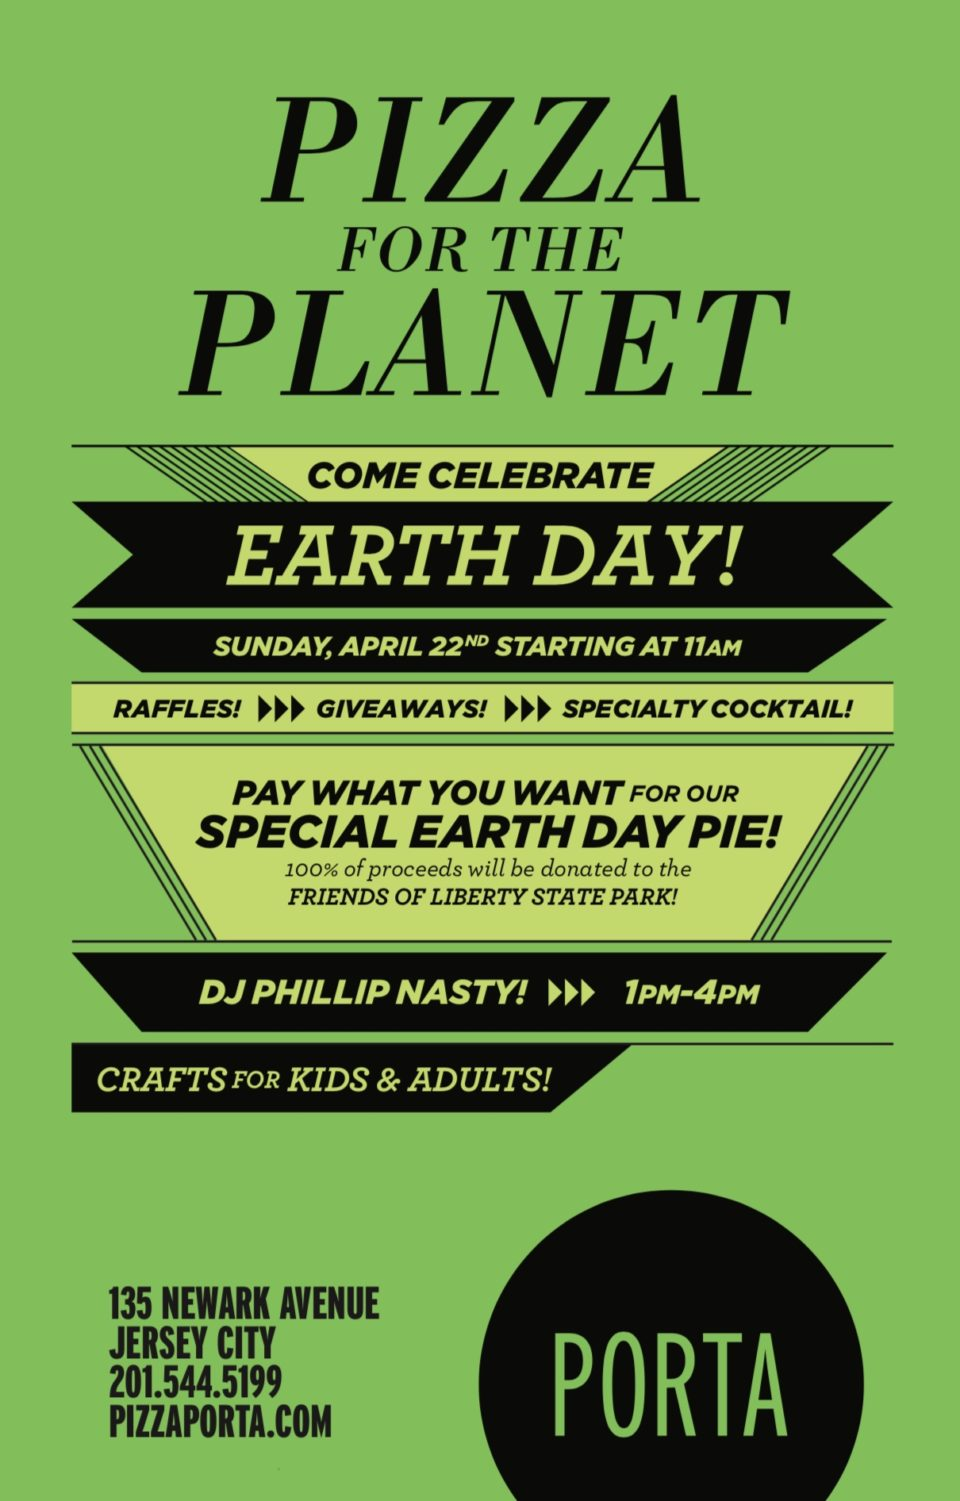 Earth Day at Porta!